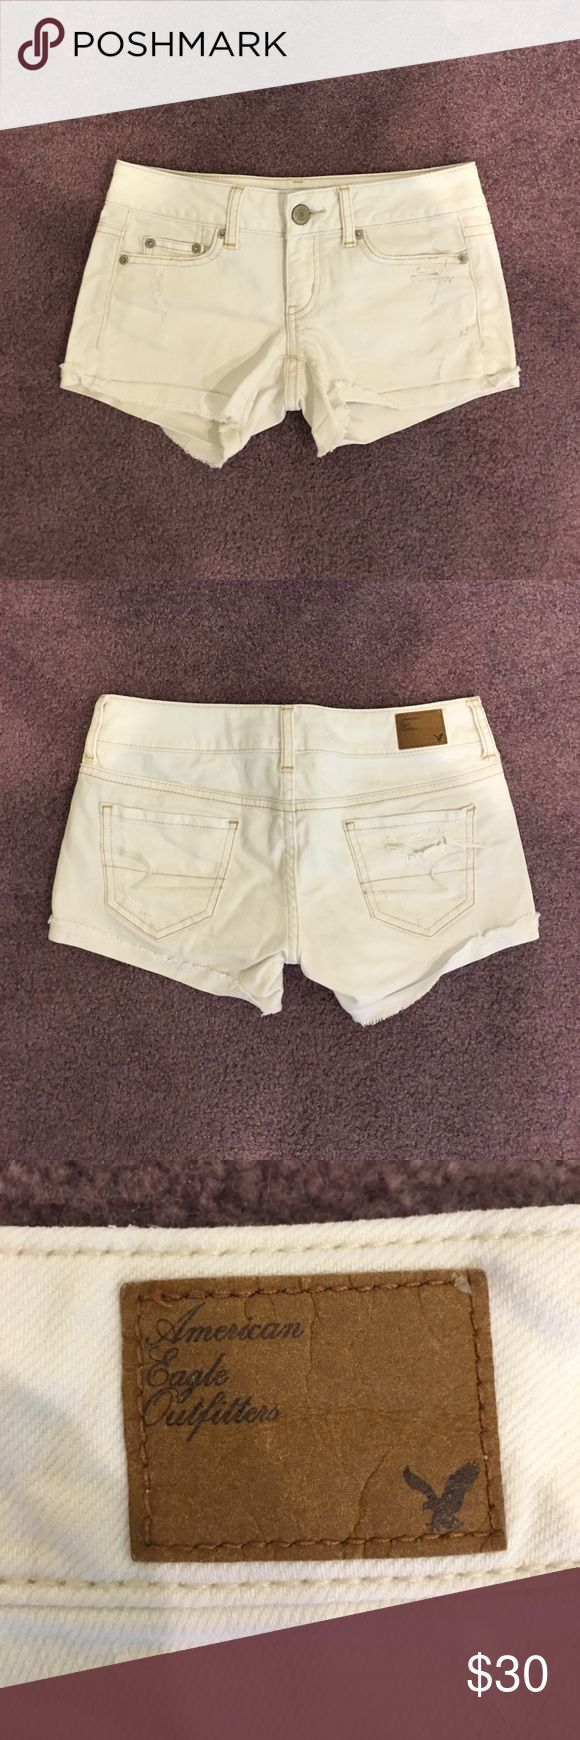 American Eagle Shorts American Eagle white denim shorts. These have some decorative rips. They are in excellent condition. American Eagle Outfitters Shorts Jean Shorts